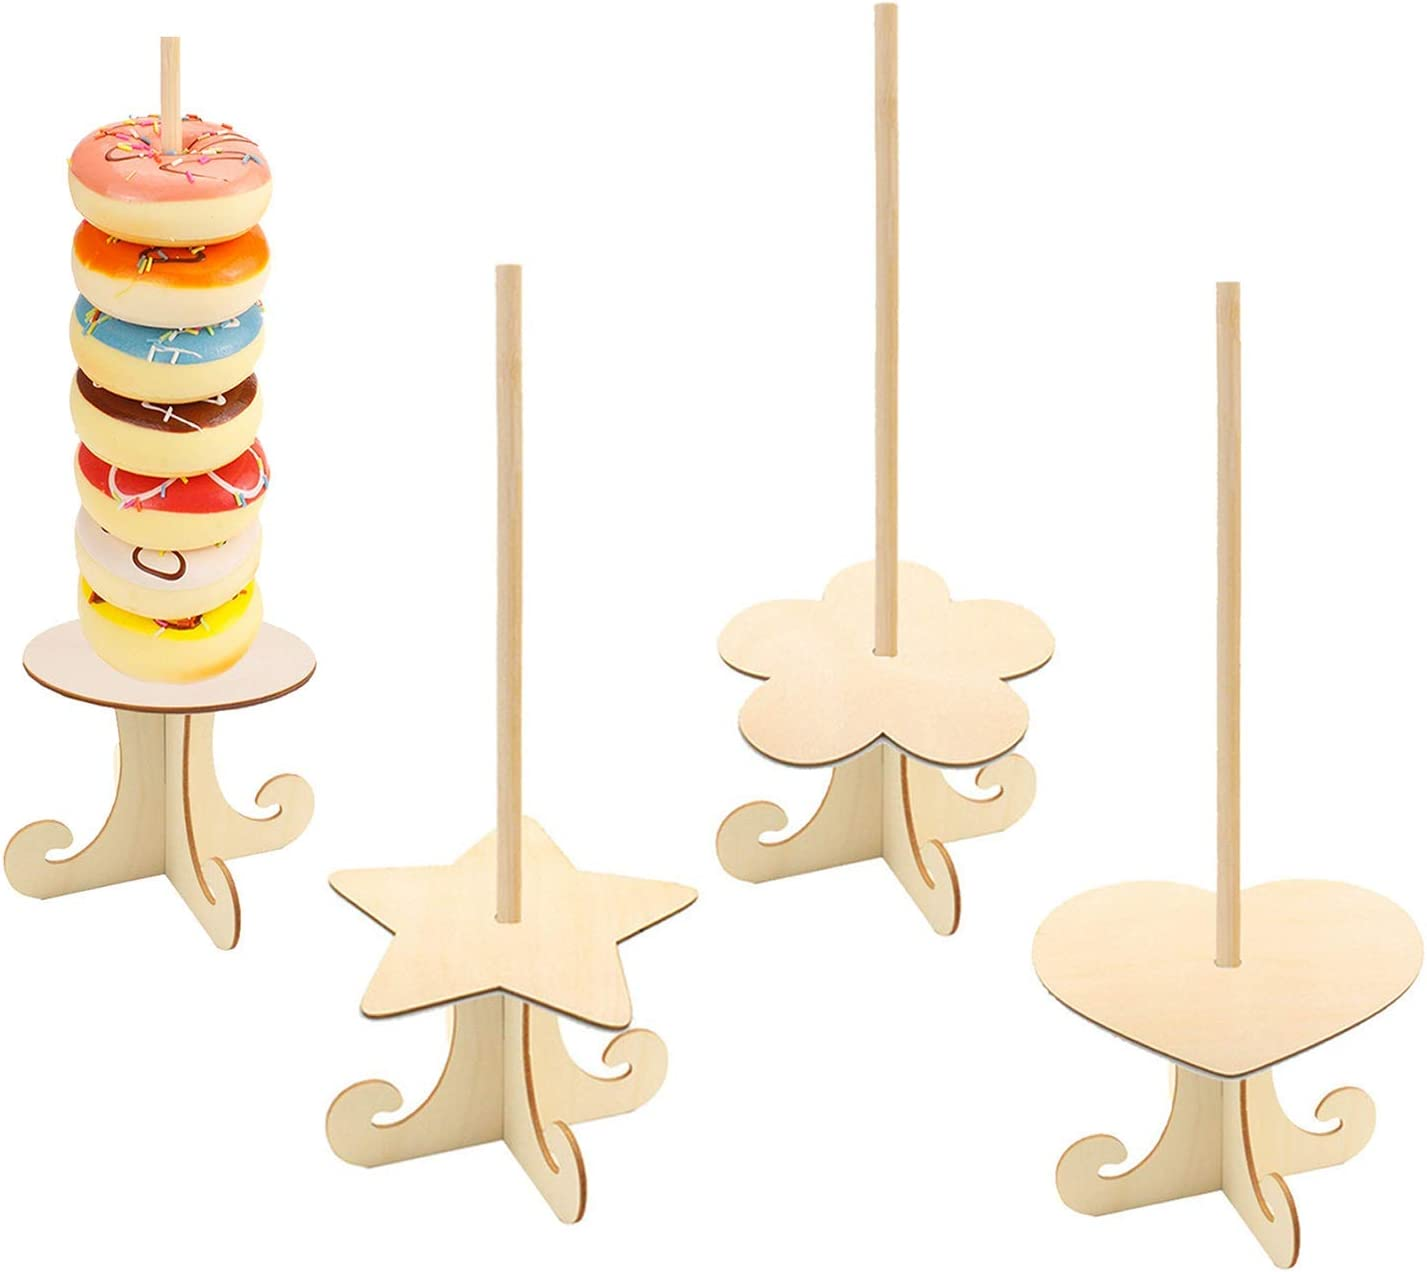 Chris.W 4Pack Donut Display Stand Creative Shape Wooden Donuts Bagels Dessert Display Holder Table for Wedding Baby Showers Bridal Shower Birthday Party Decor Favor